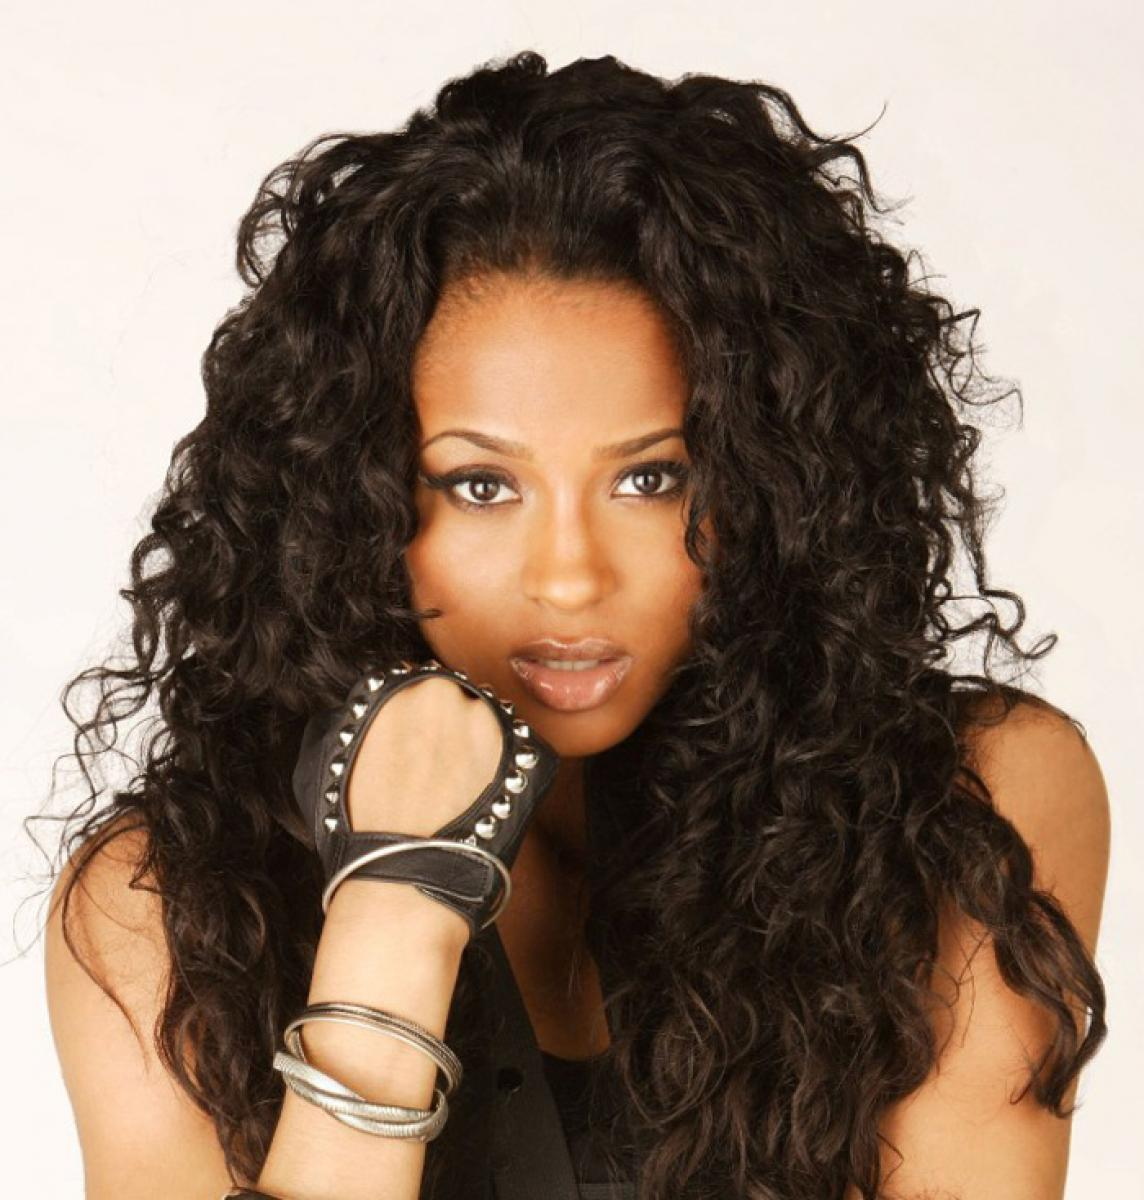 African American Curly Weave Hairstyles for Women